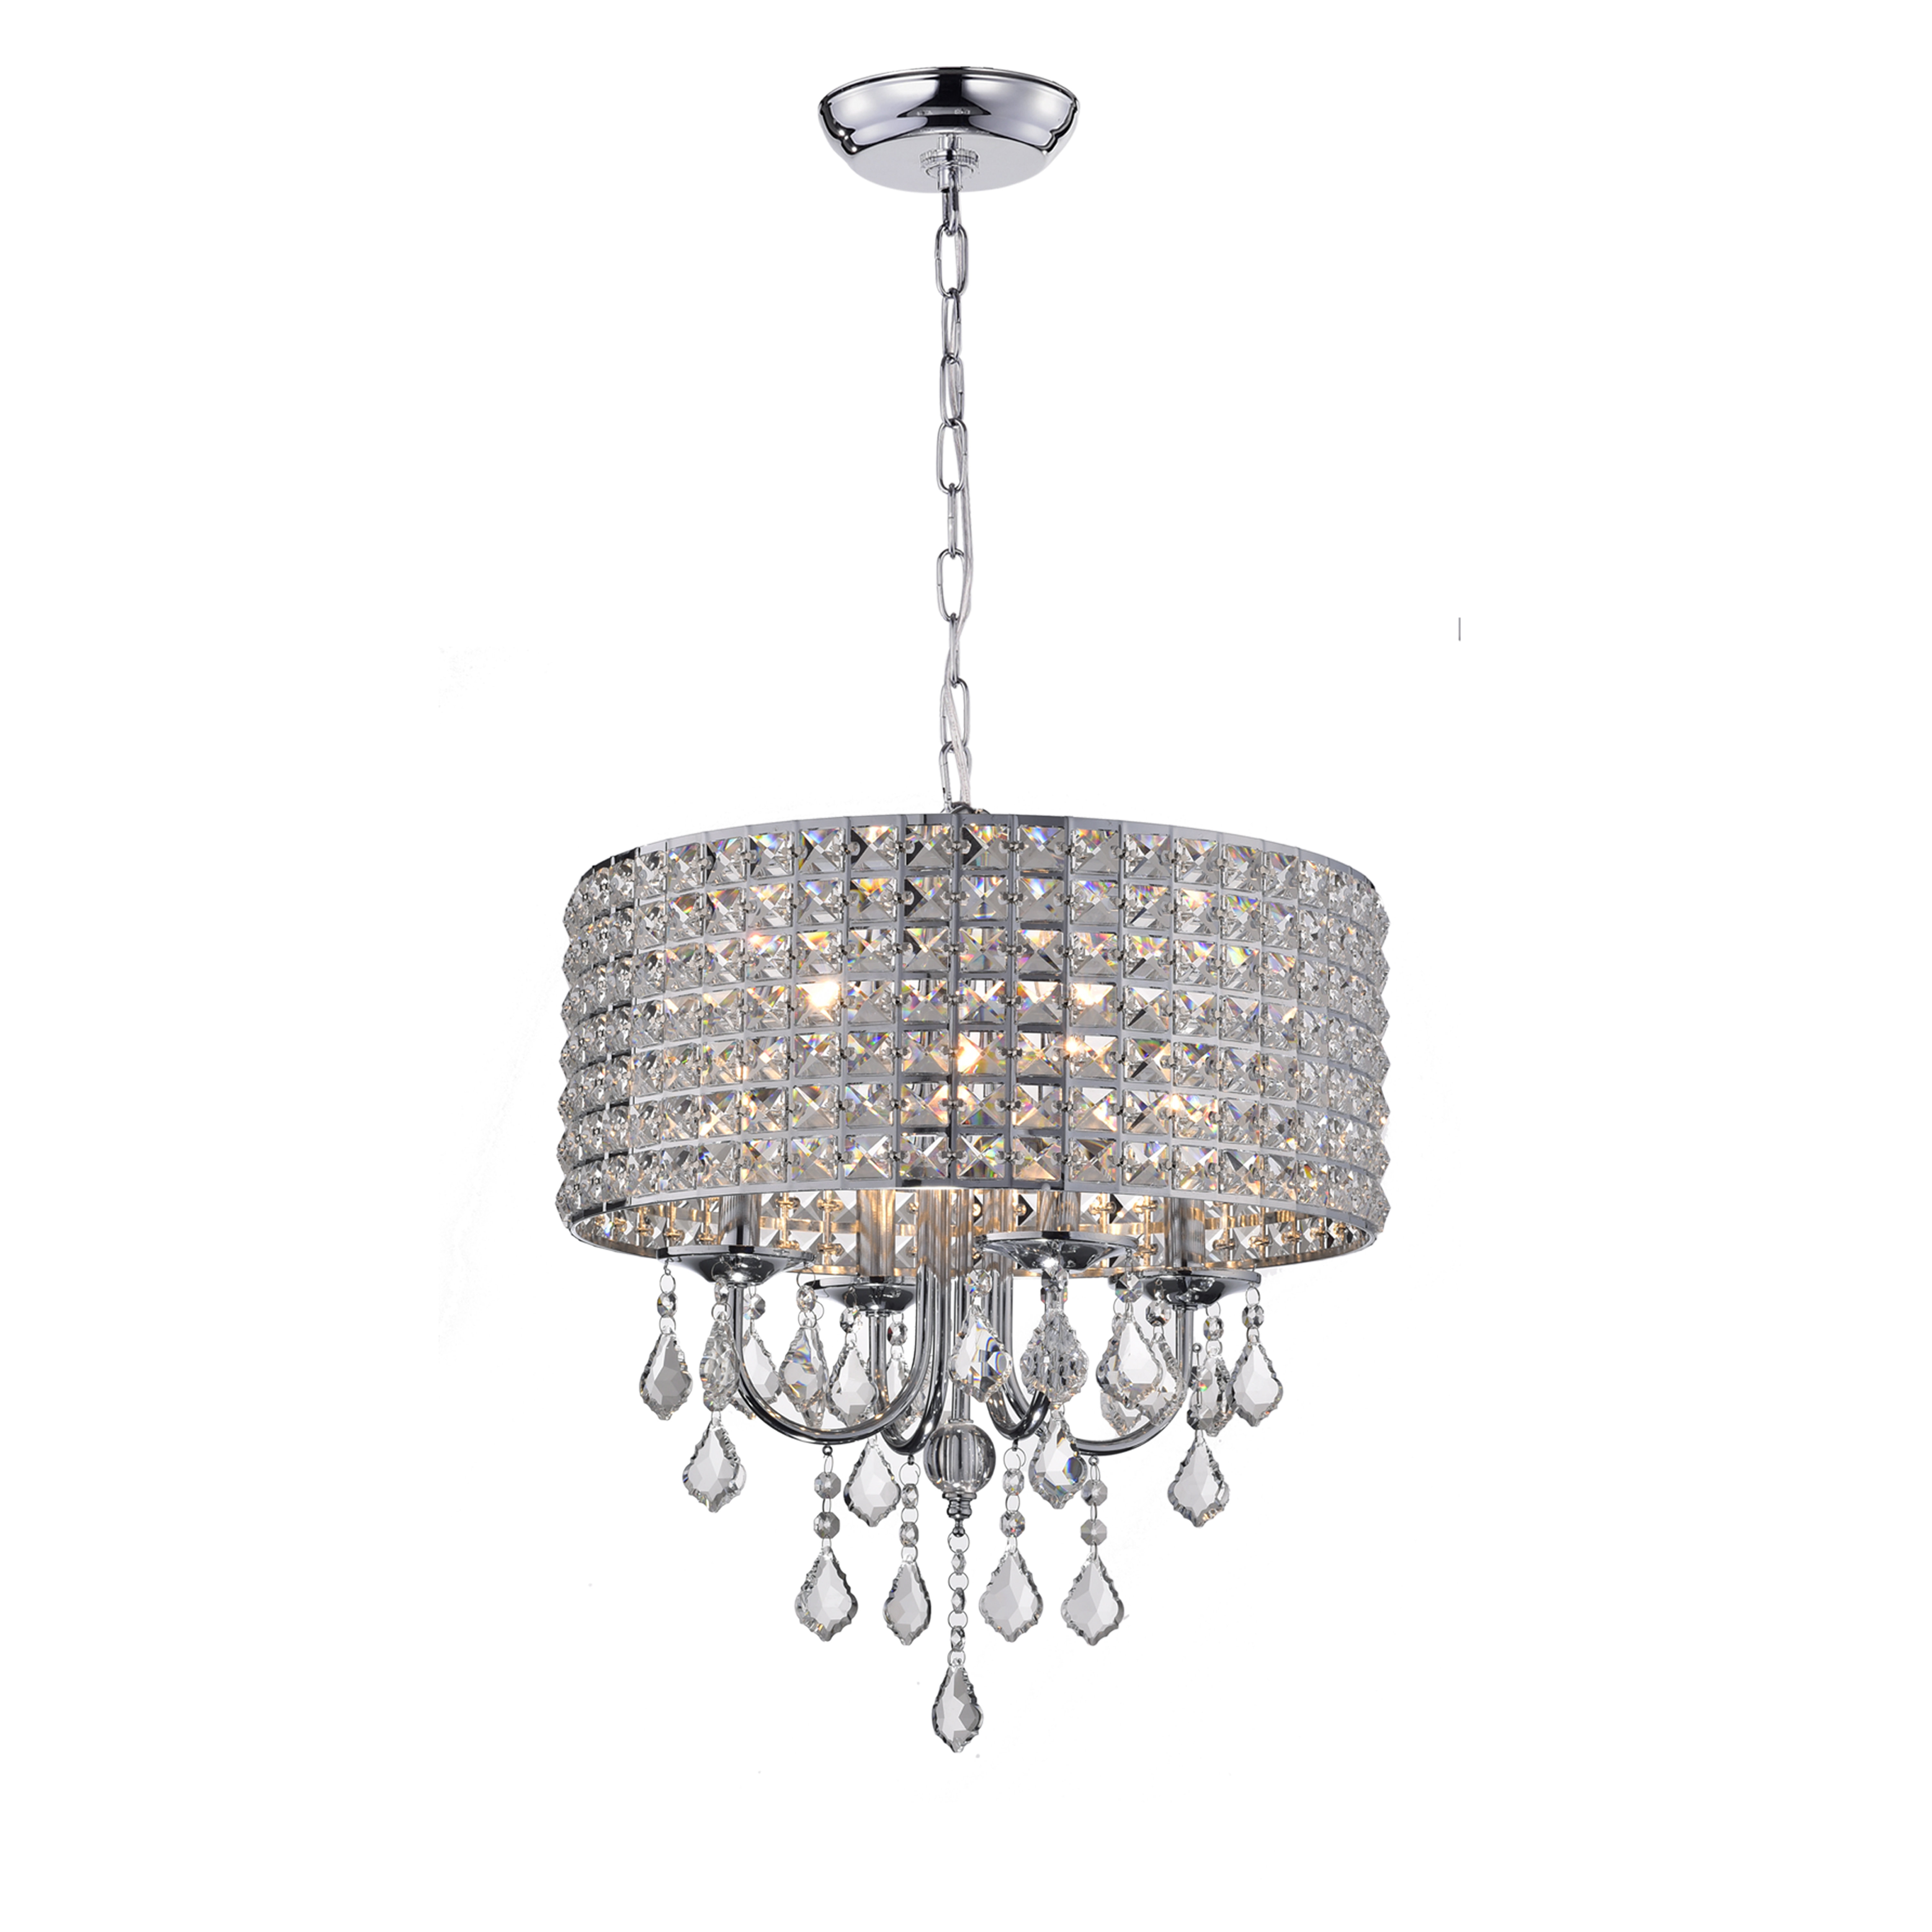 Albano 4 Light Crystal Chandelier With Regard To Gisselle 4 Light Drum Chandeliers (View 18 of 30)